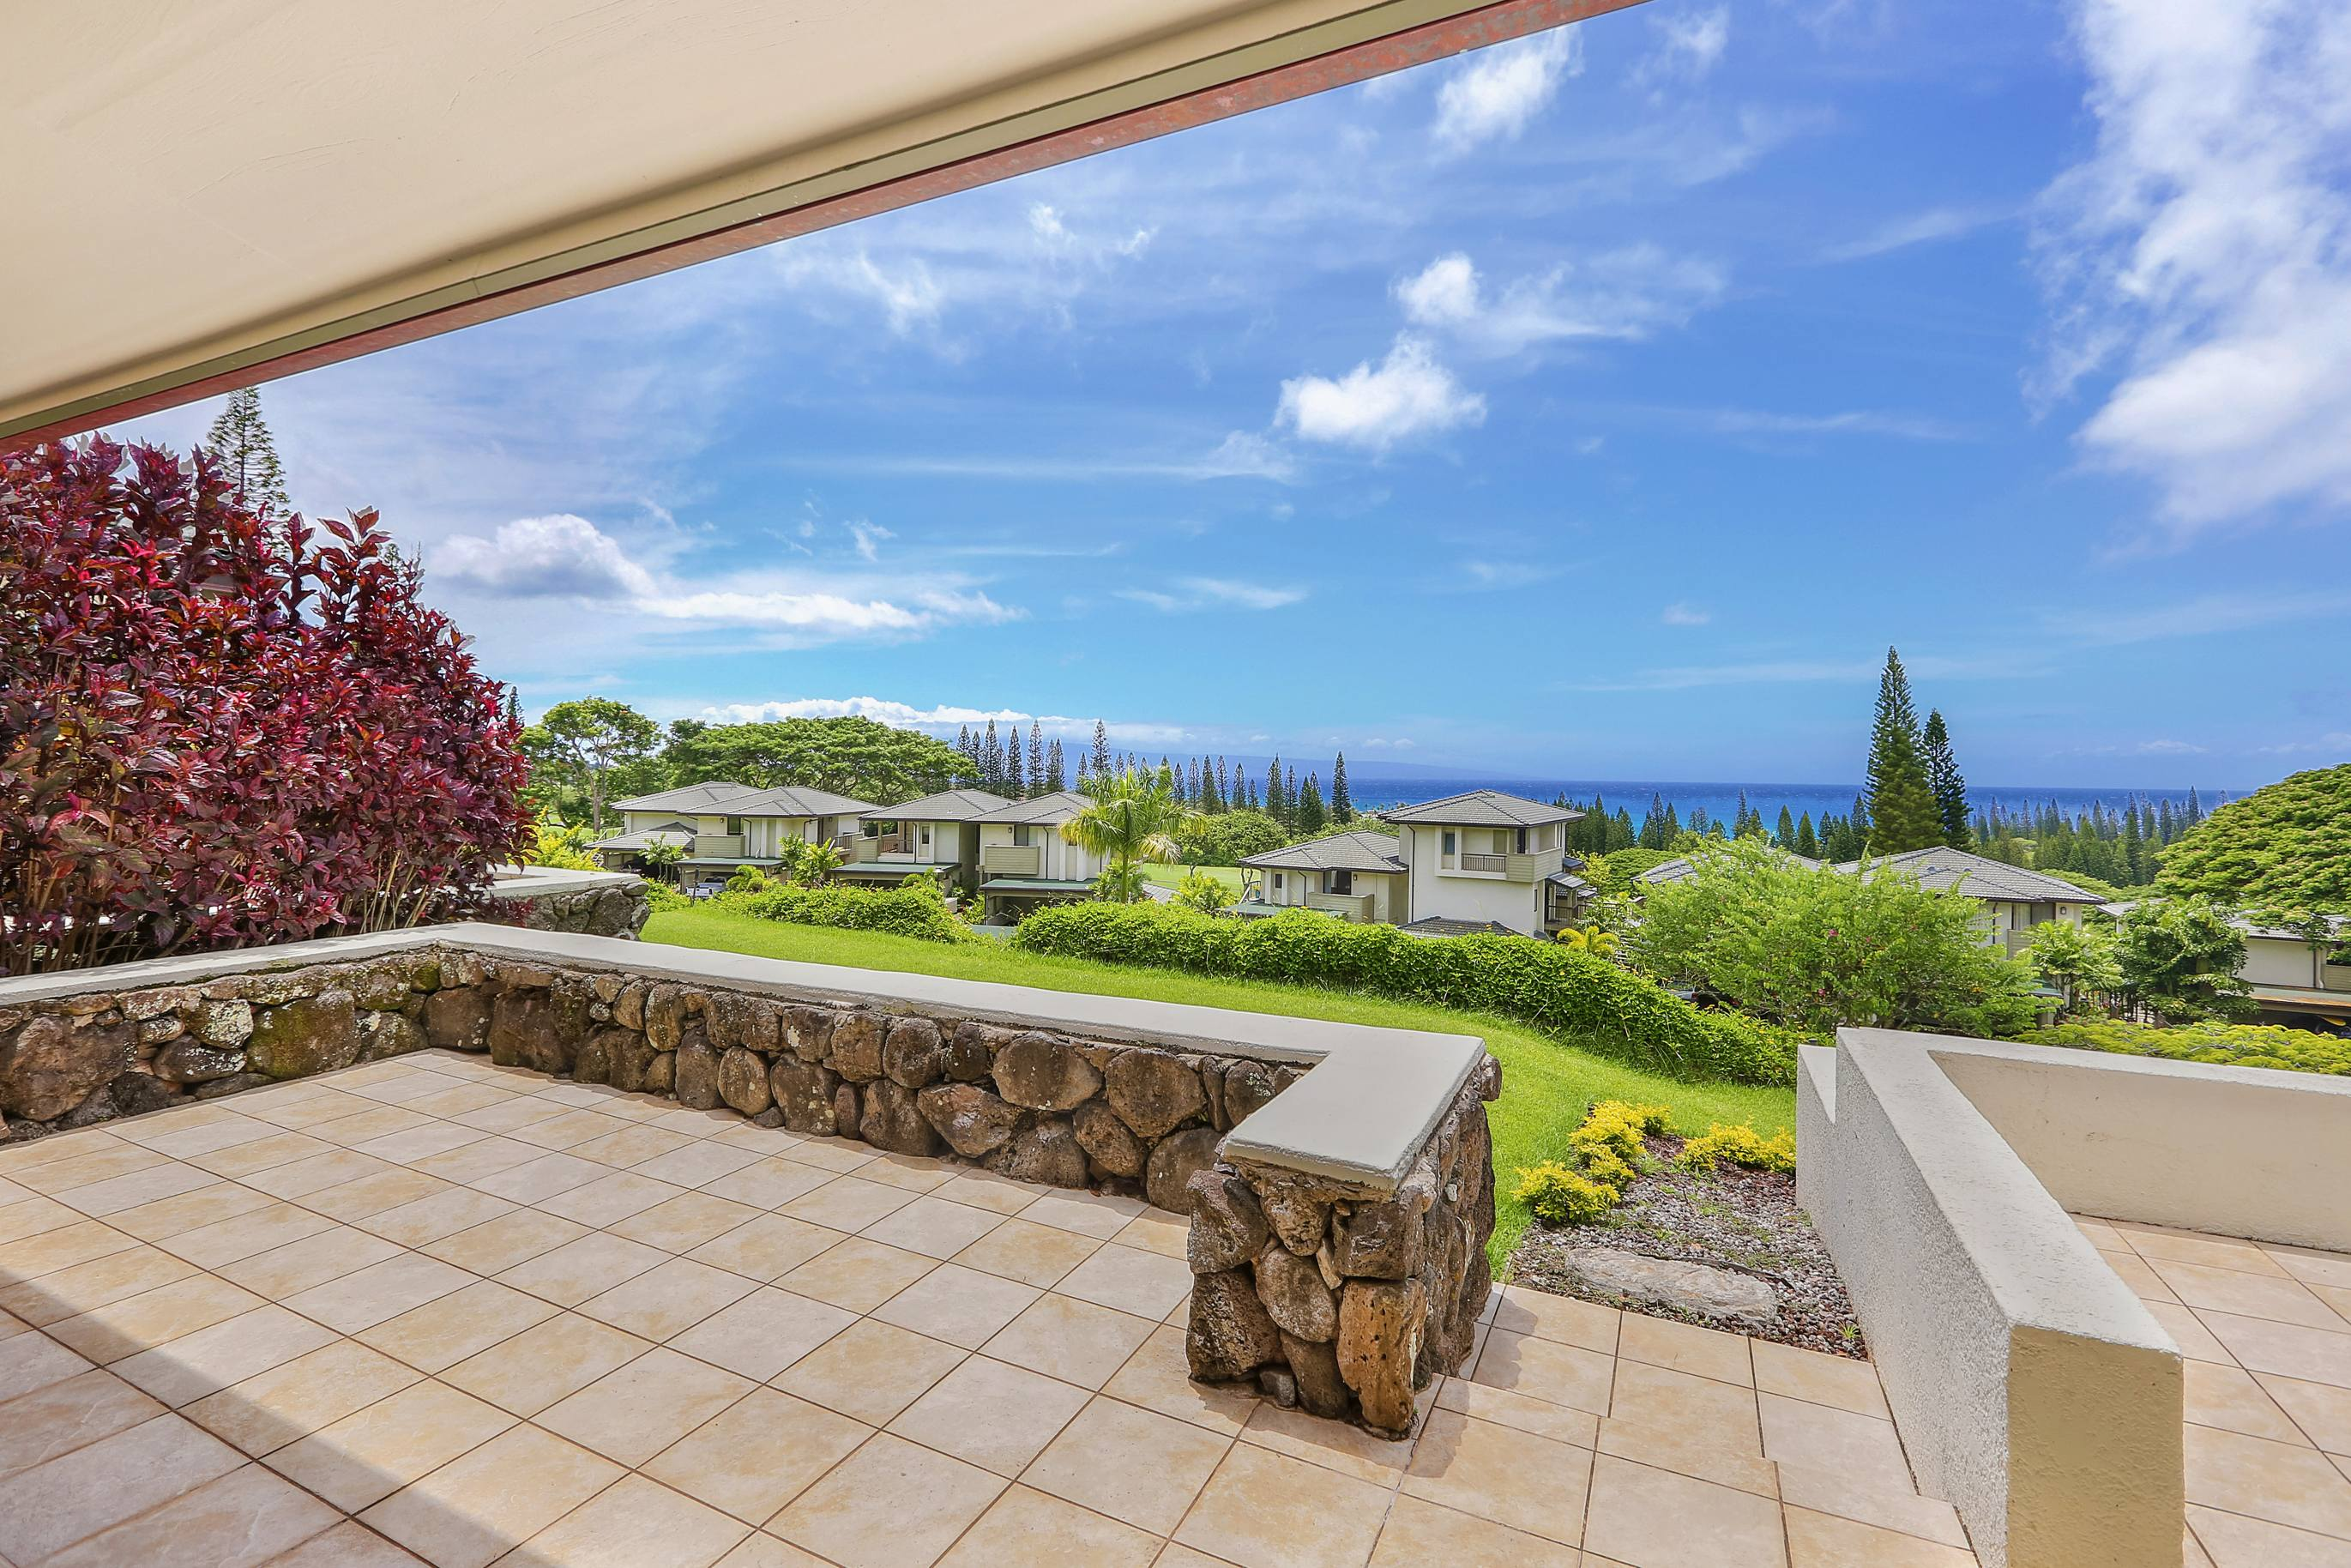 Gorgeous KBM Hawaii managed luxury villa!